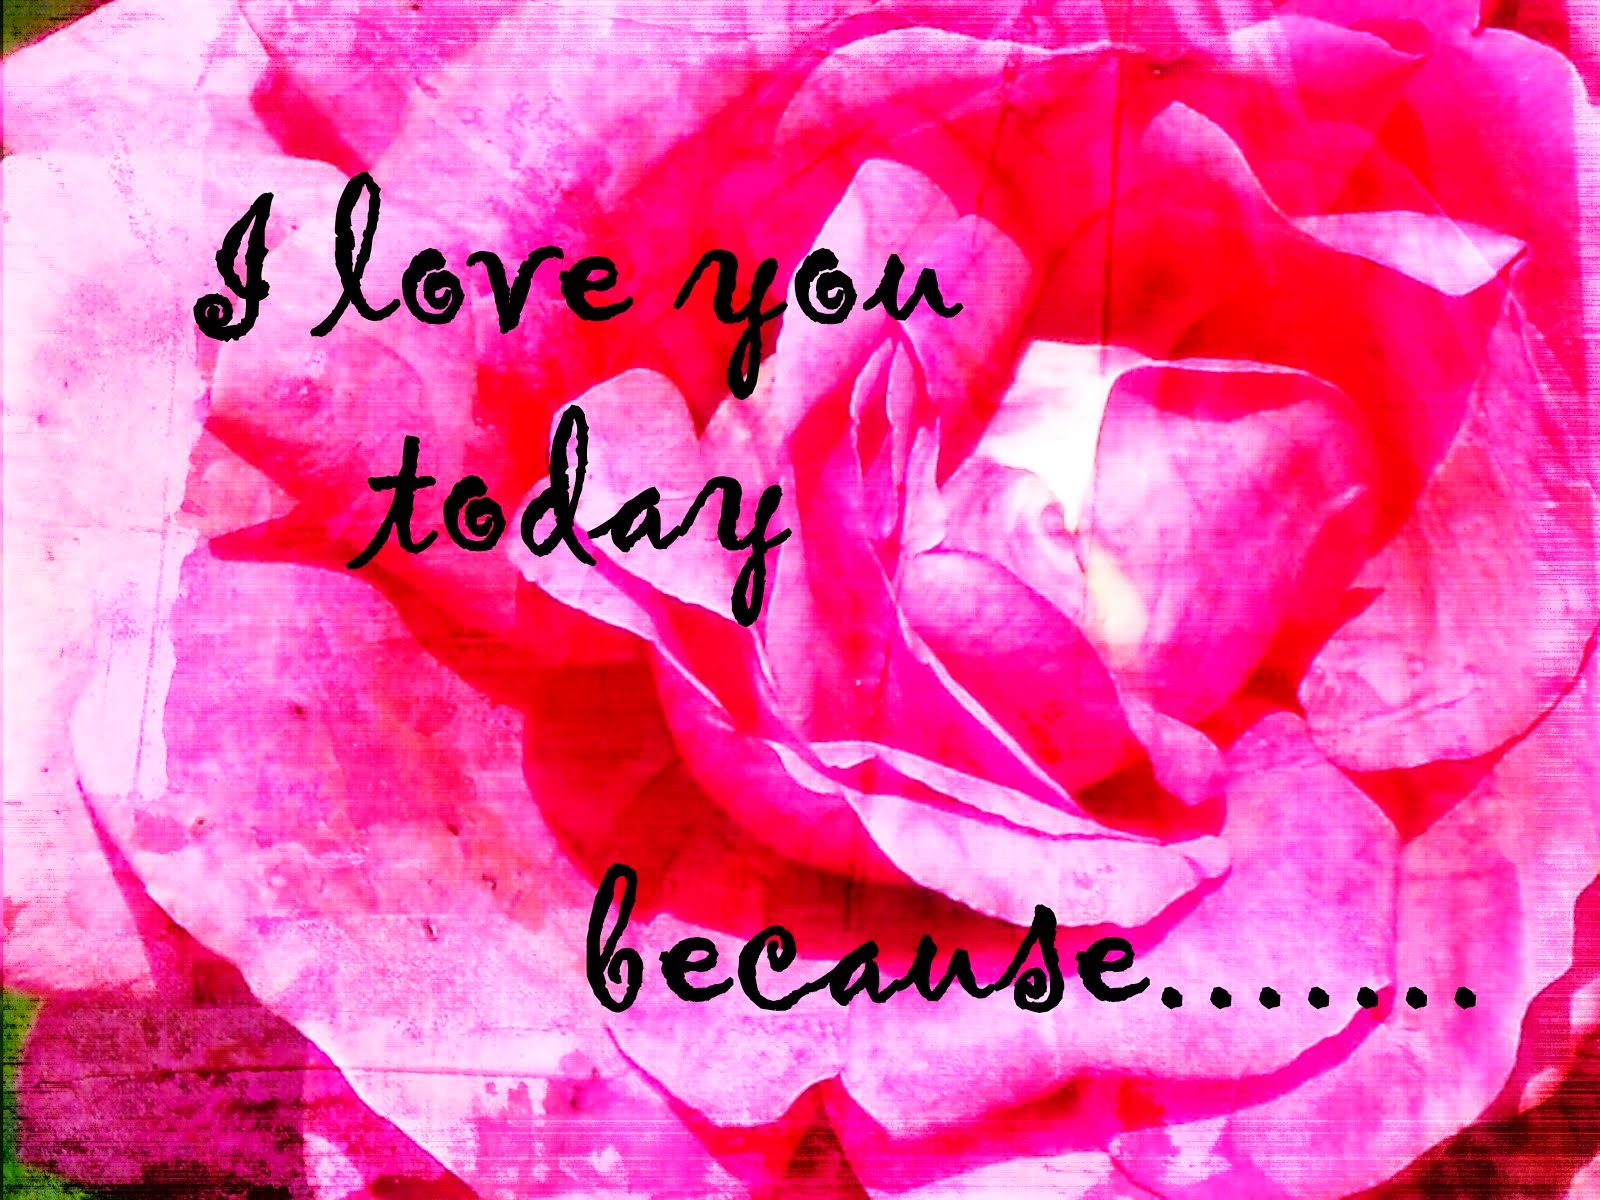 I love you today because....